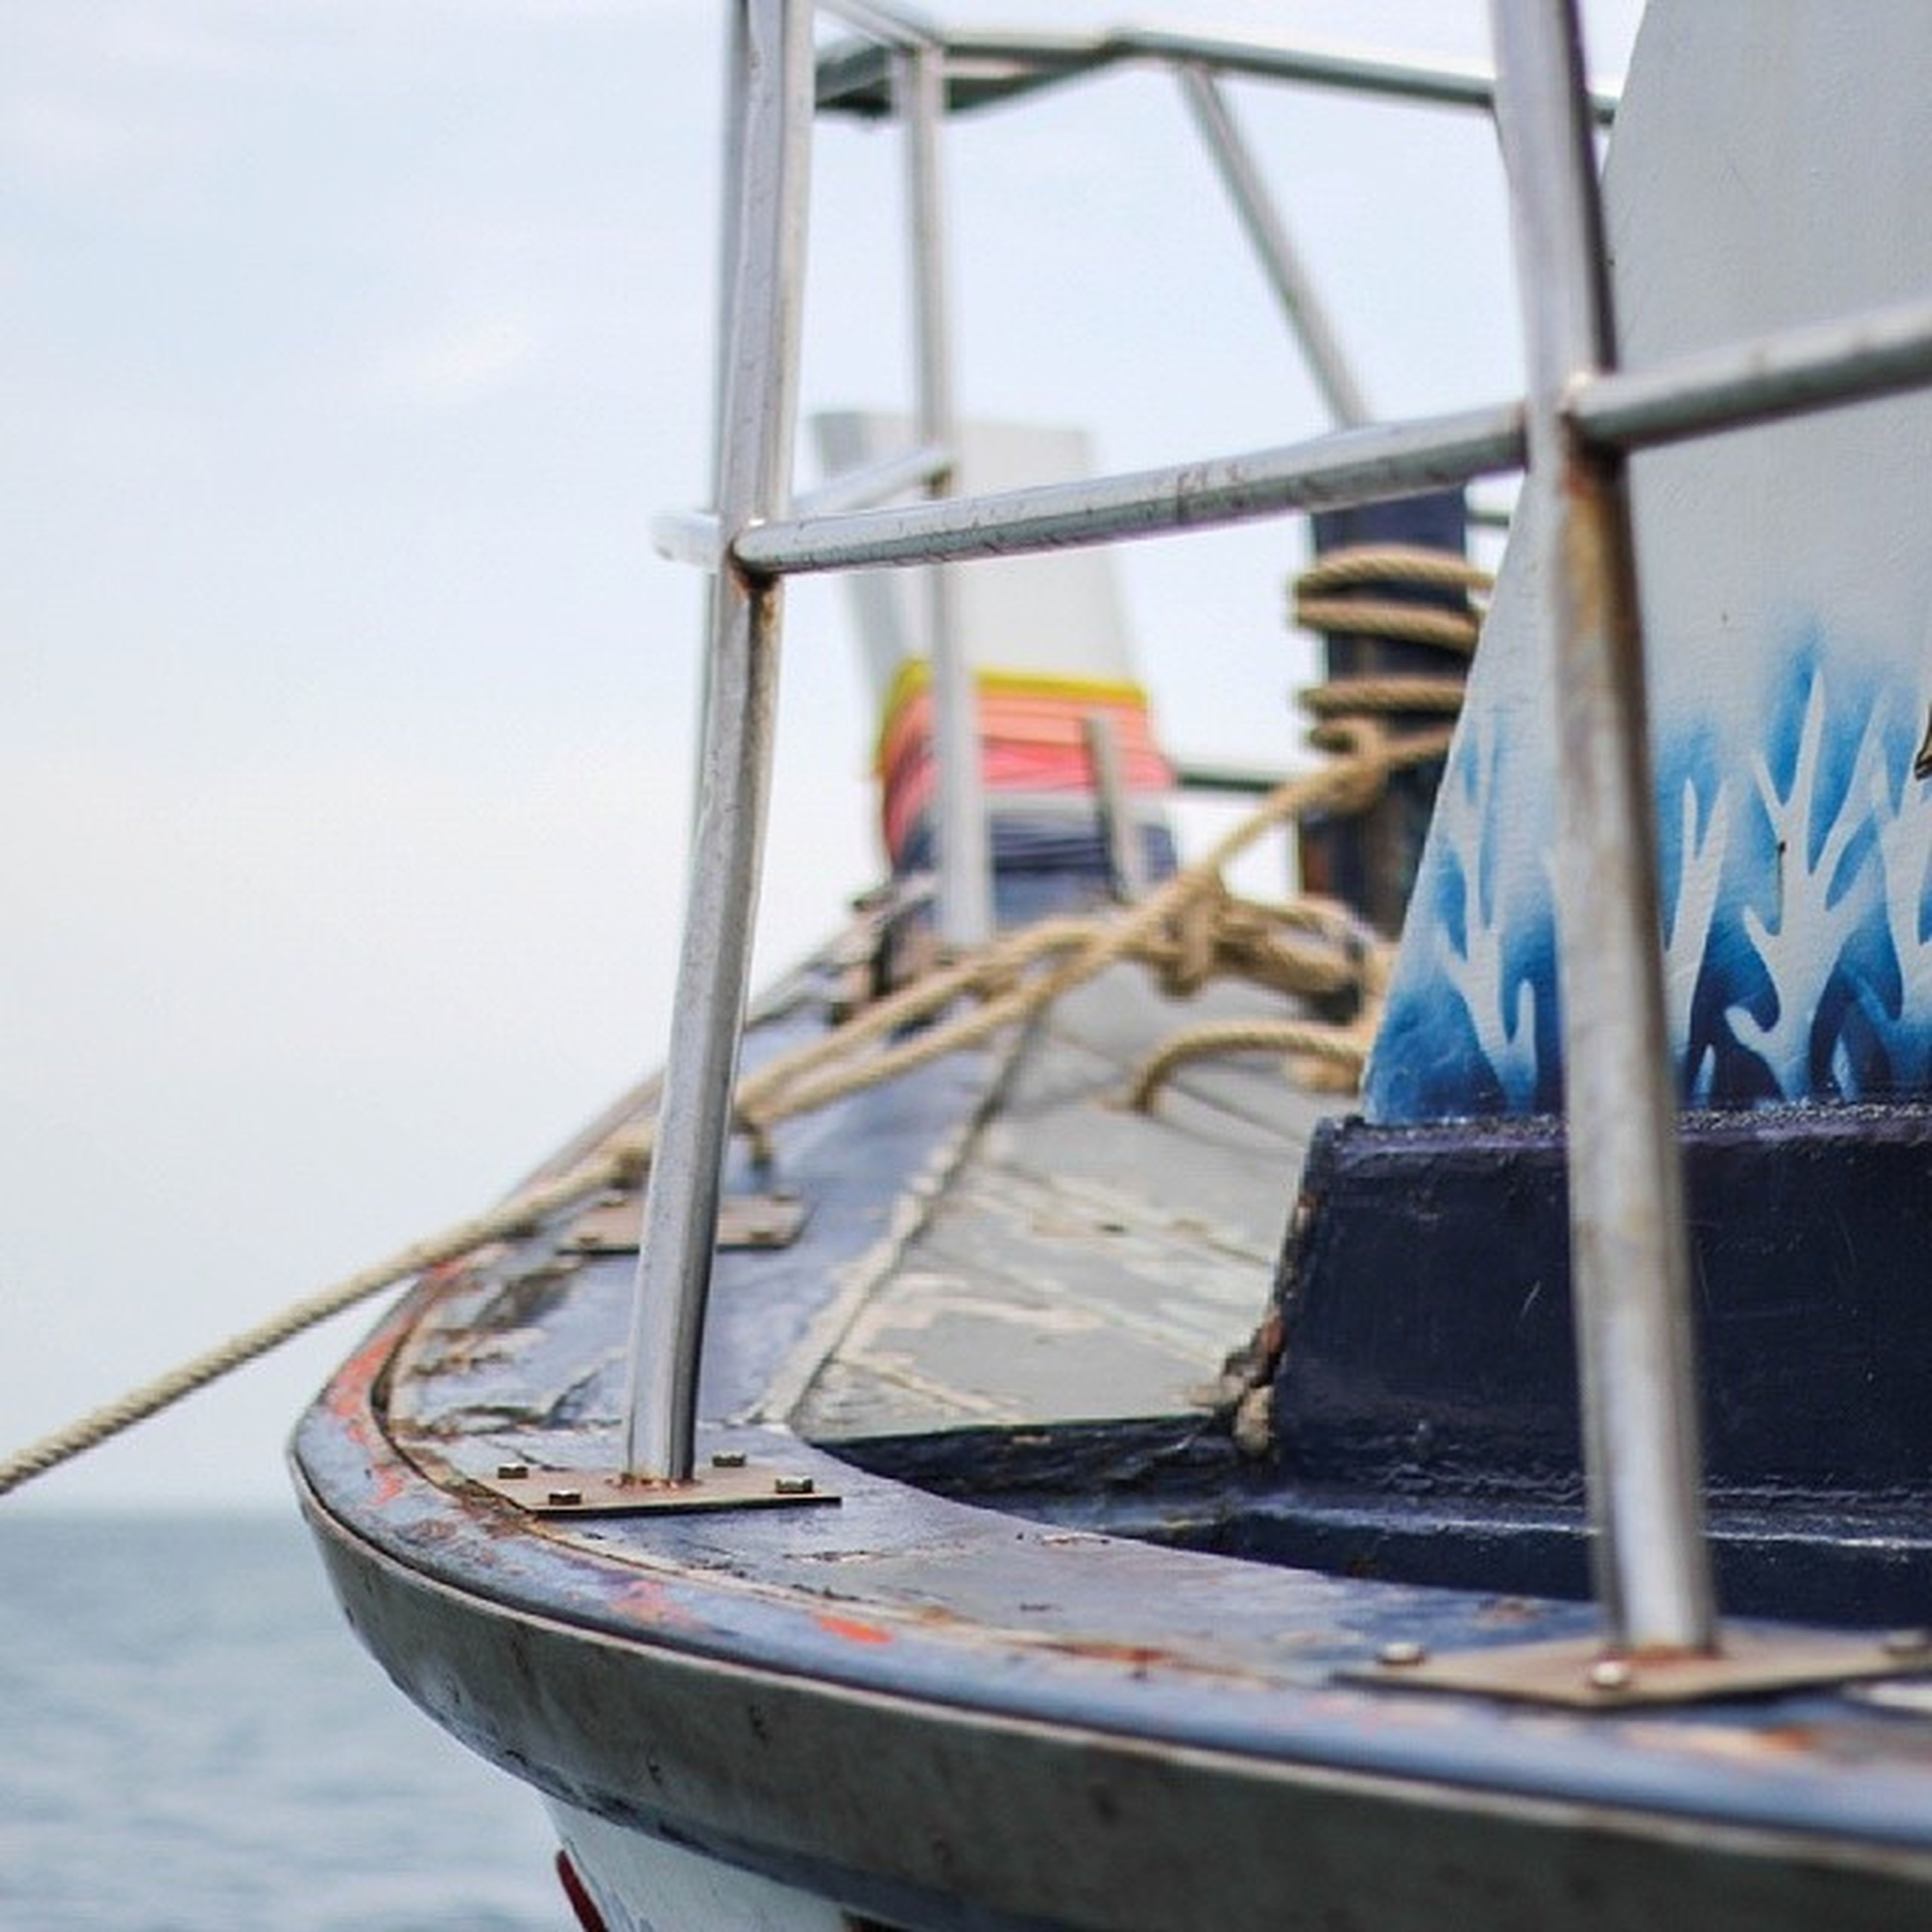 nautical vessel, boat, moored, water, mode of transport, transportation, sea, focus on foreground, rope, sky, day, metal, close-up, outdoors, blue, no people, abandoned, damaged, old, wood - material